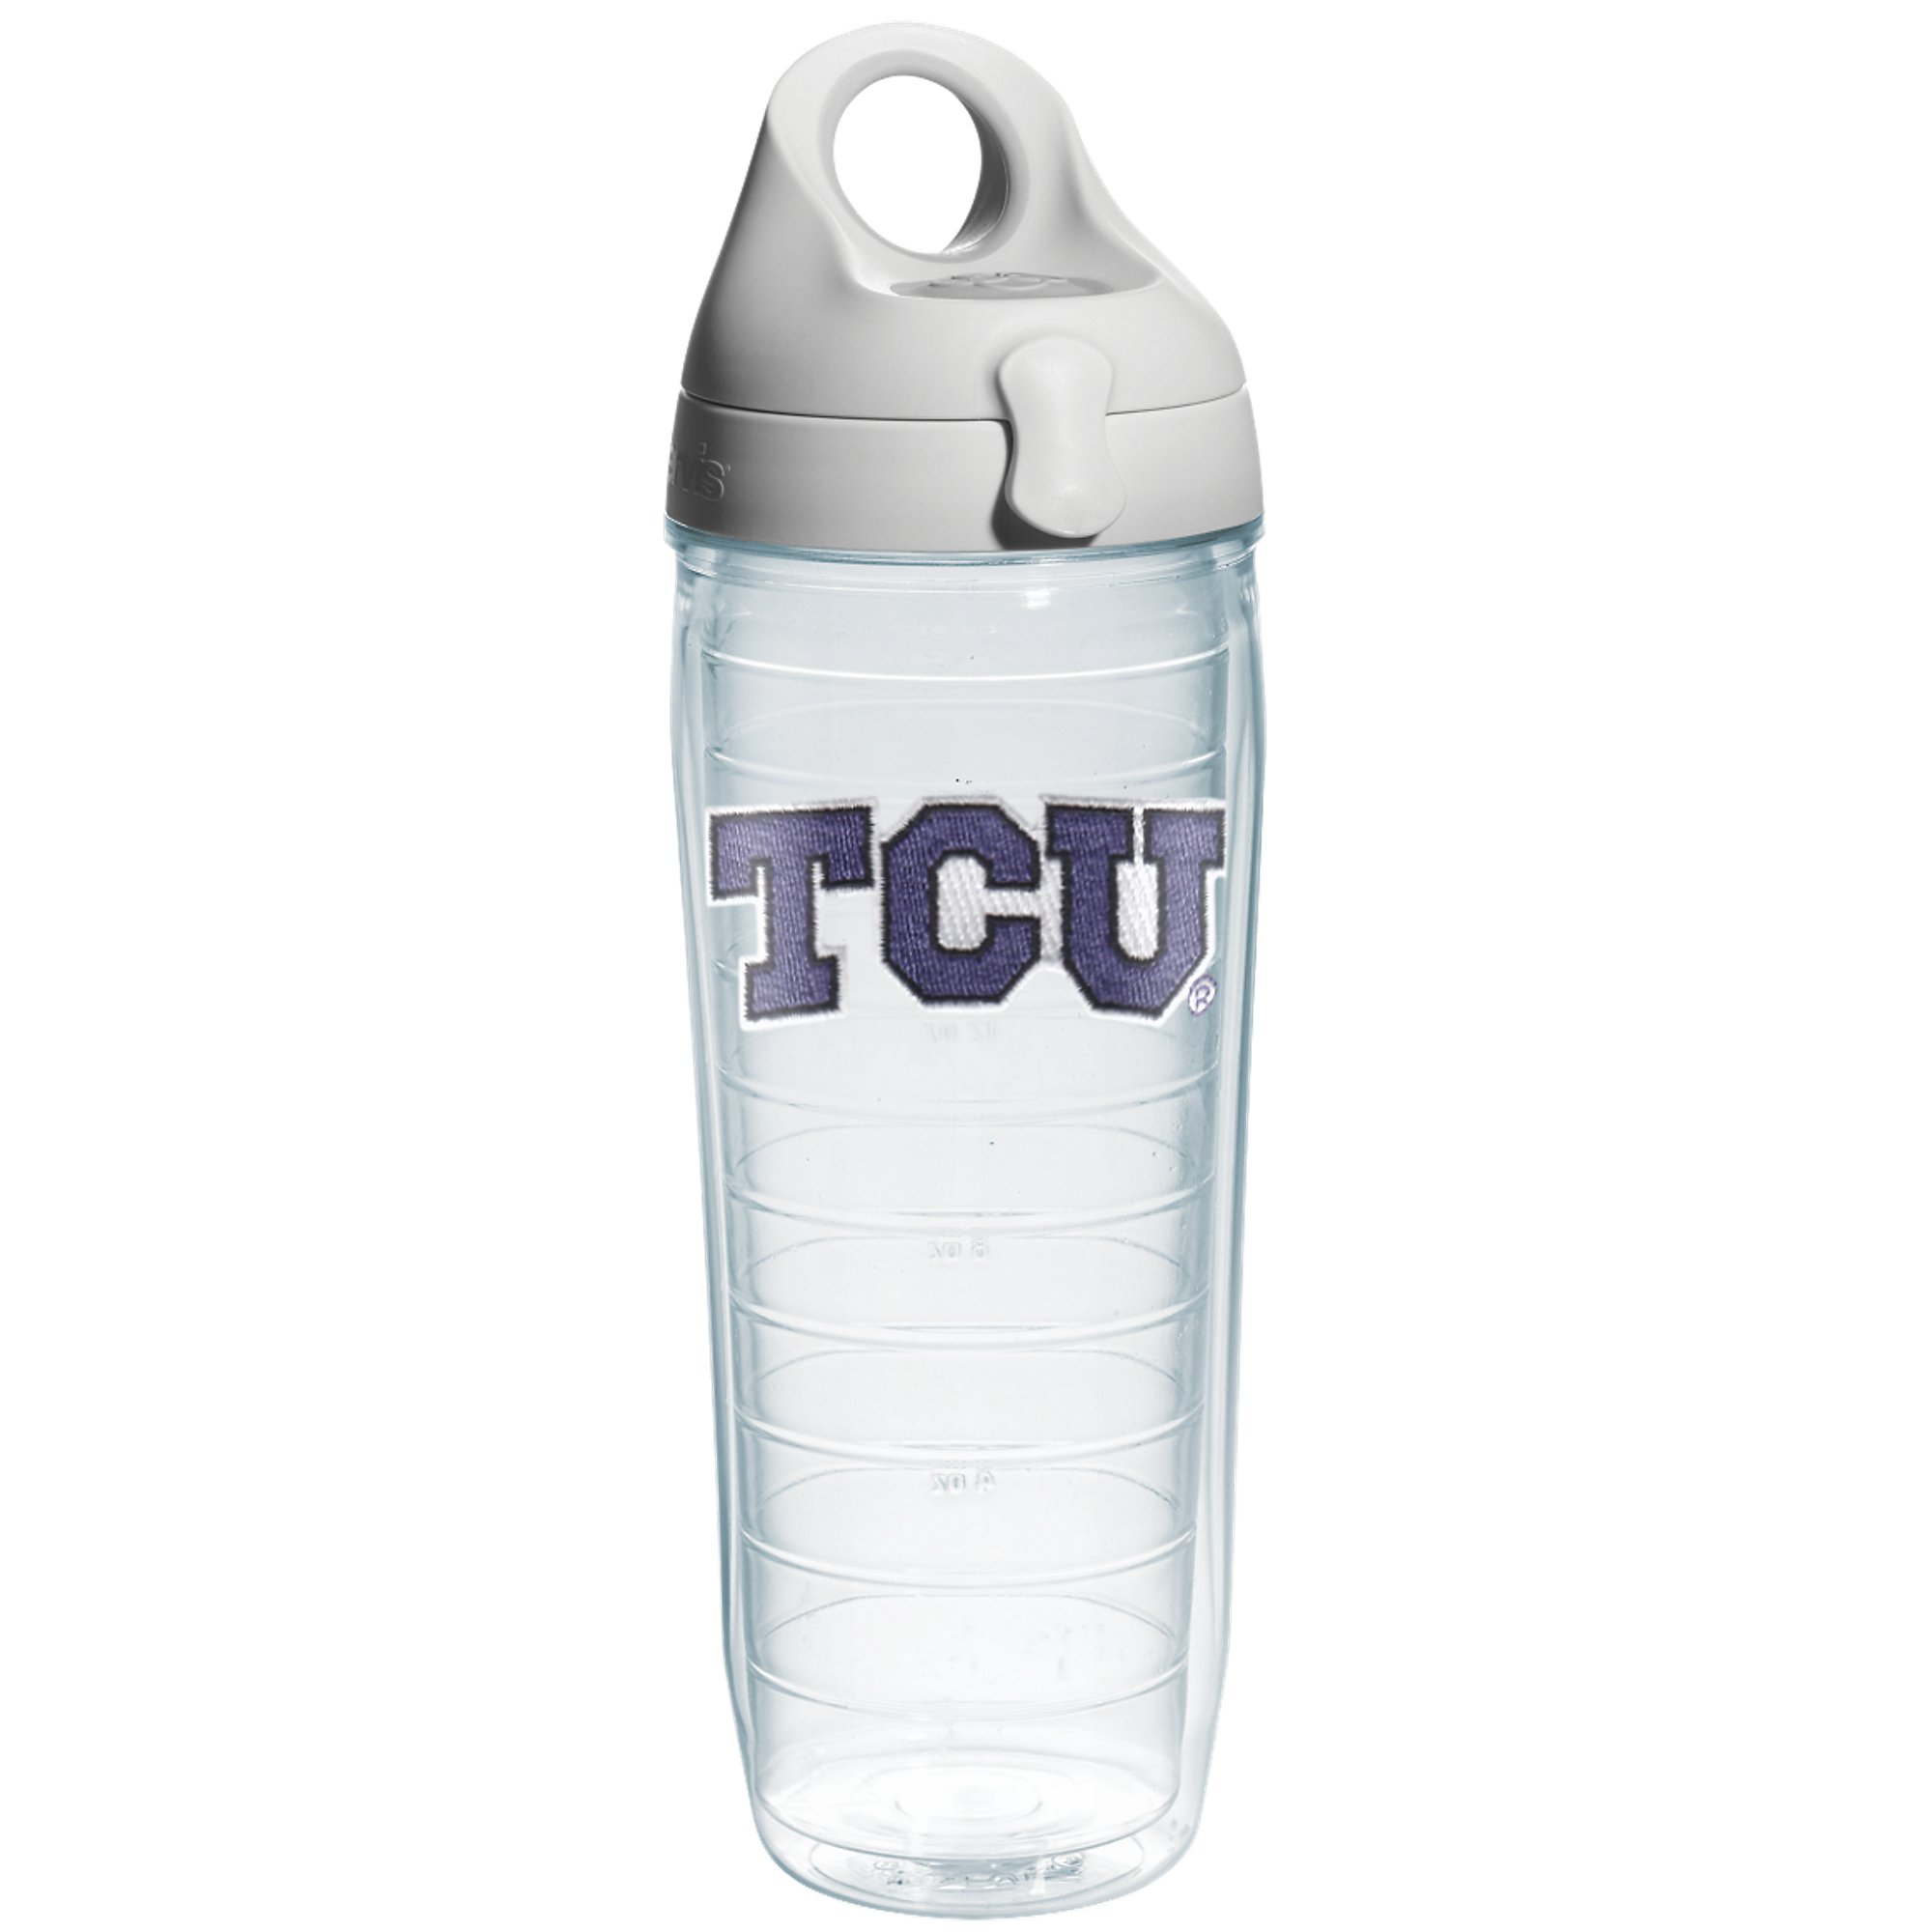 Tervis Texas Christian University Emblem Individual Water Bottle with Gray Lid, 24 oz, Clear by Tervis